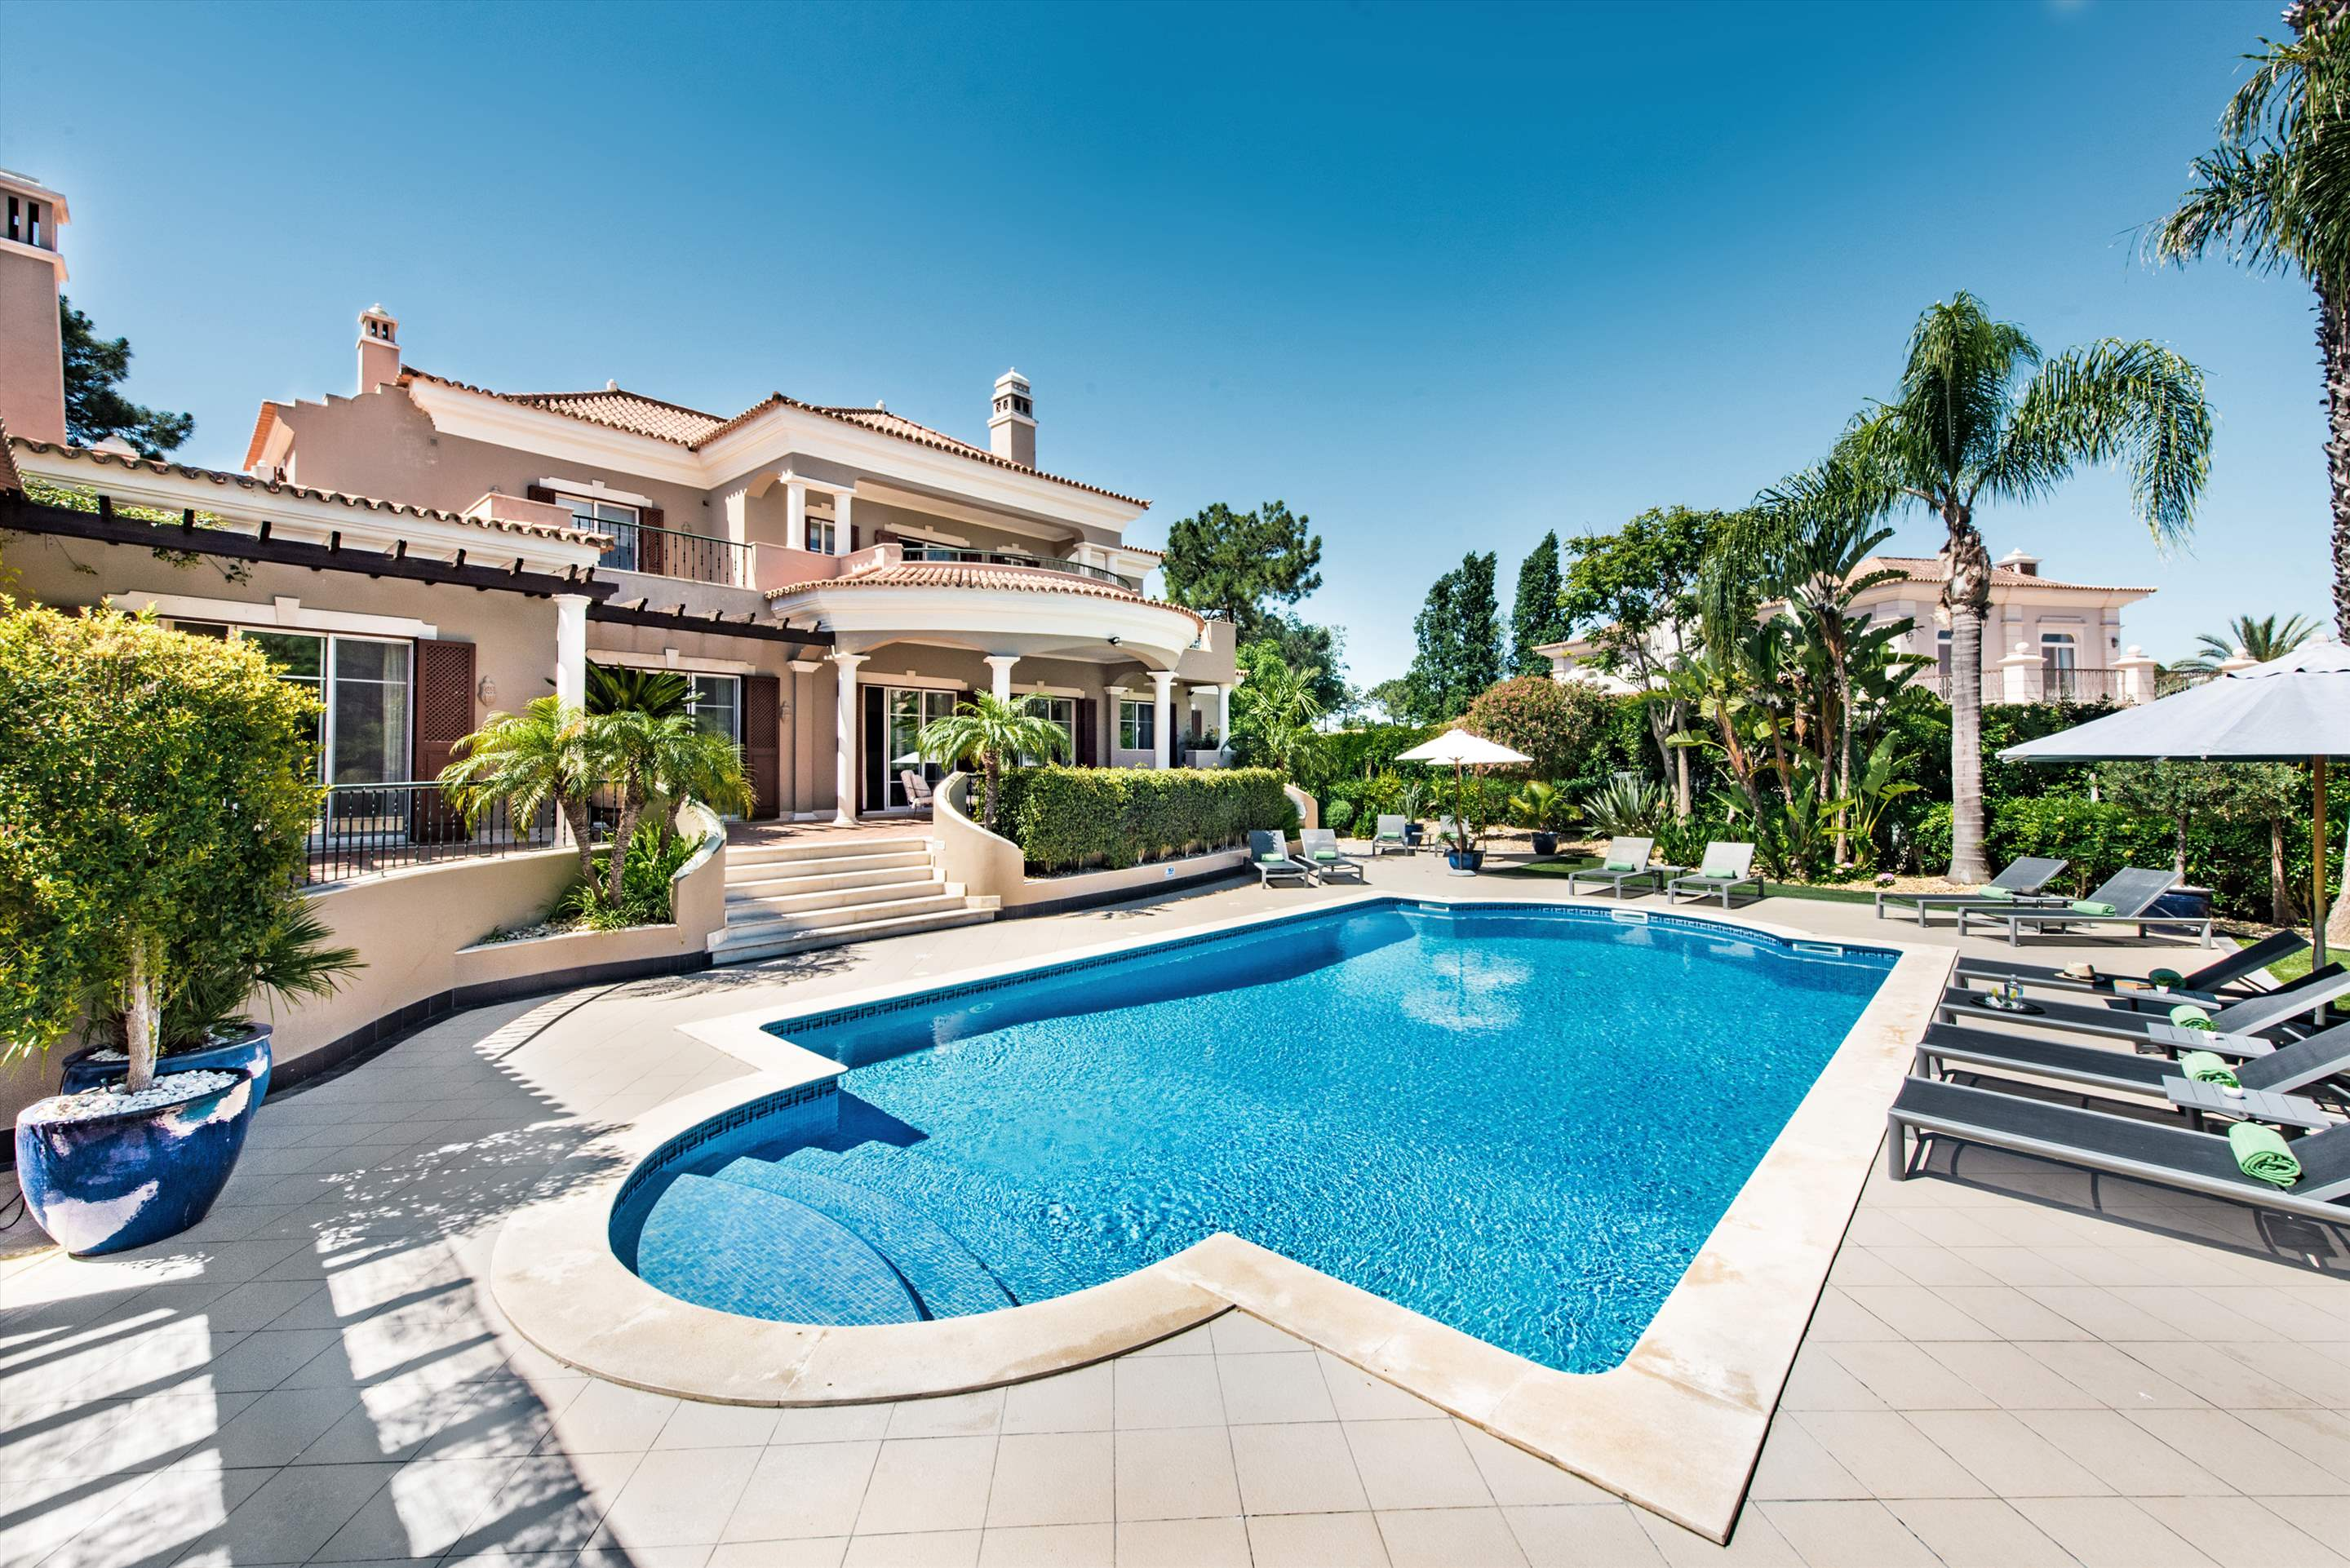 Villa San Lorenzo, 6 bedroom villa in Quinta do Lago, Algarve Photo #1